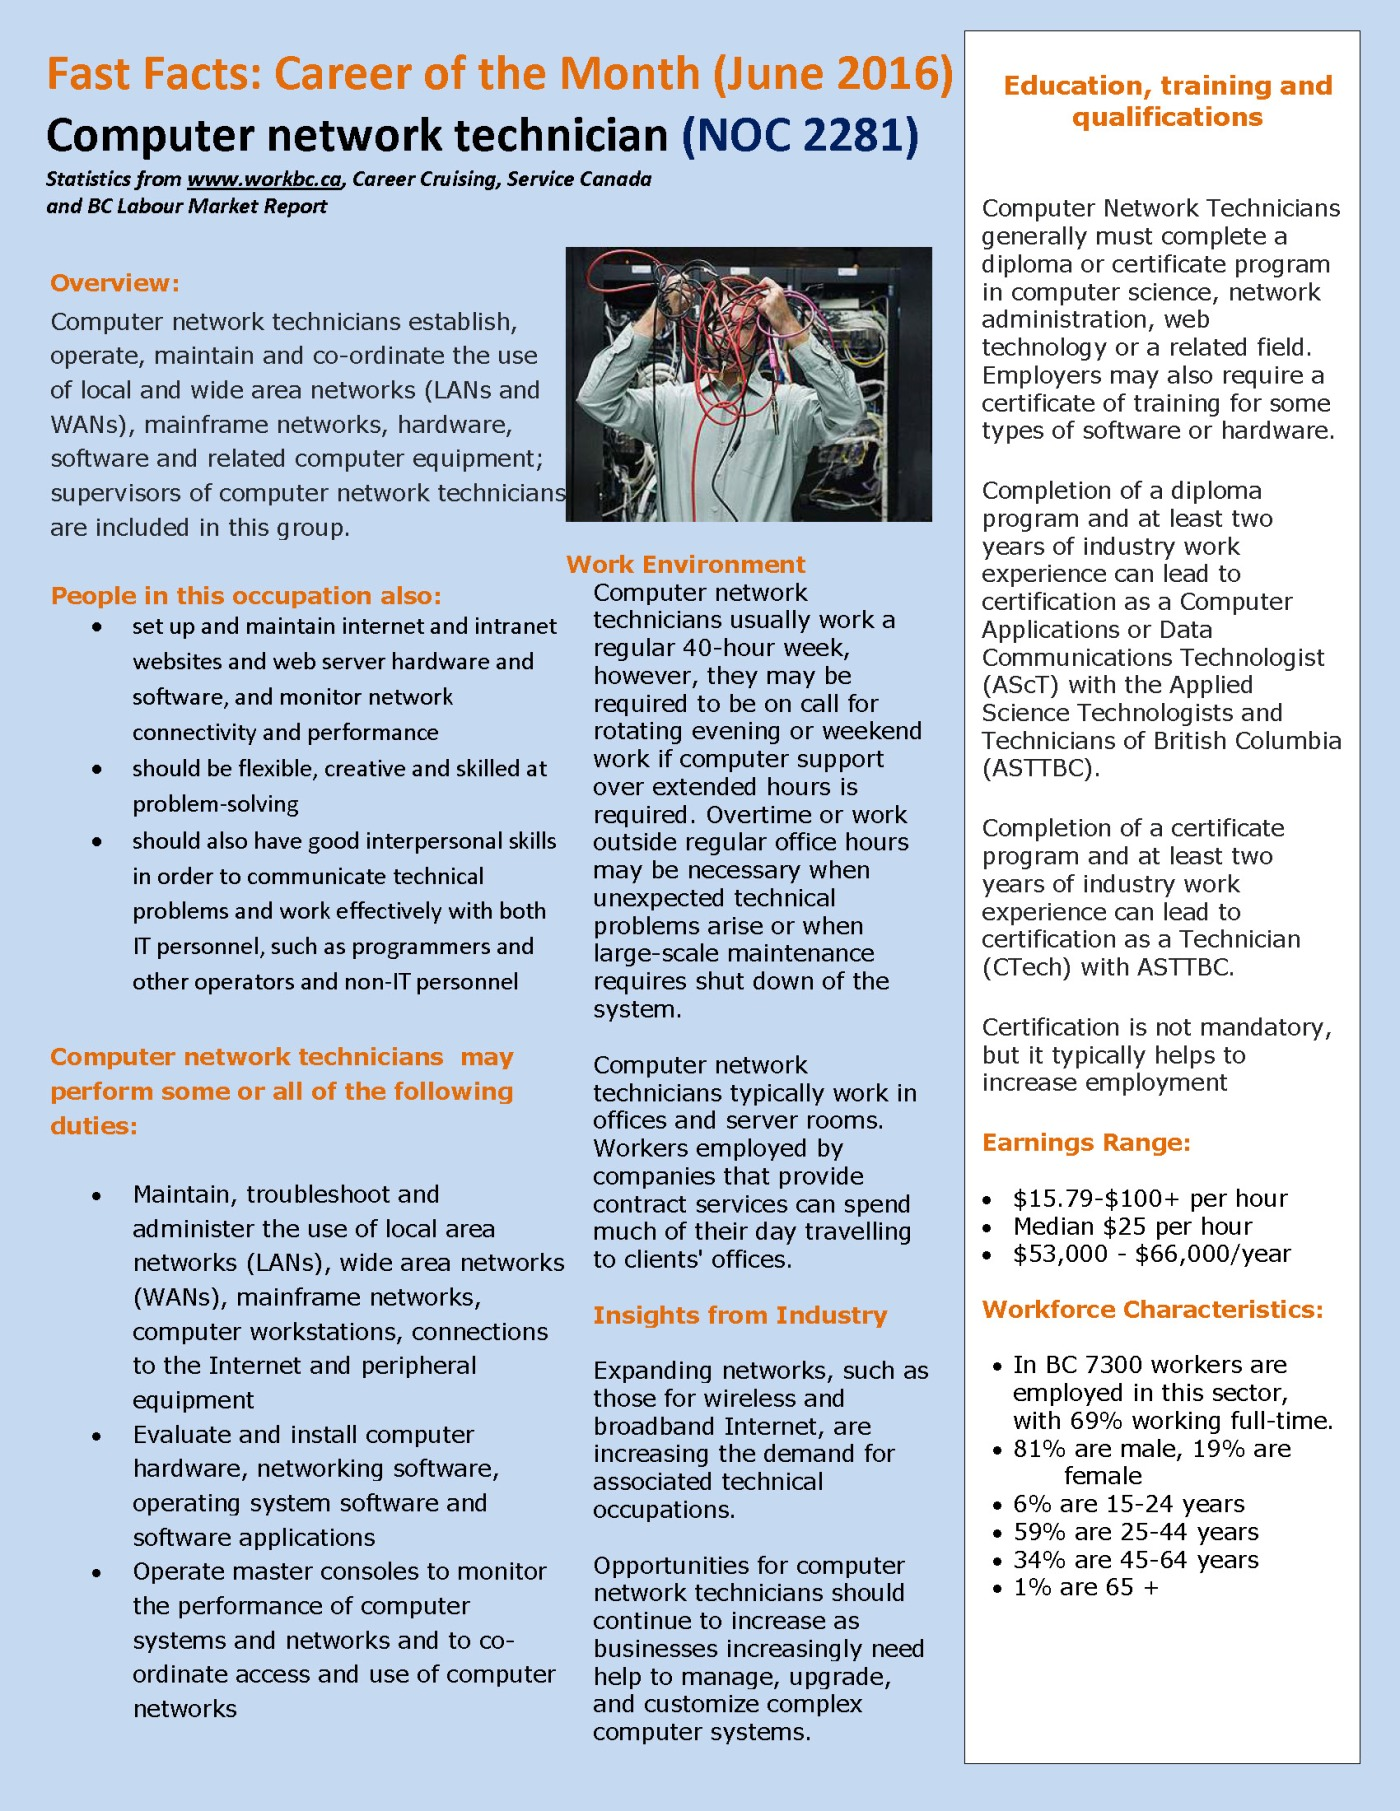 Fast facts career of the month june 2016 computer network fast facts career of the month june 2016 computer network technician career sense xflitez Images